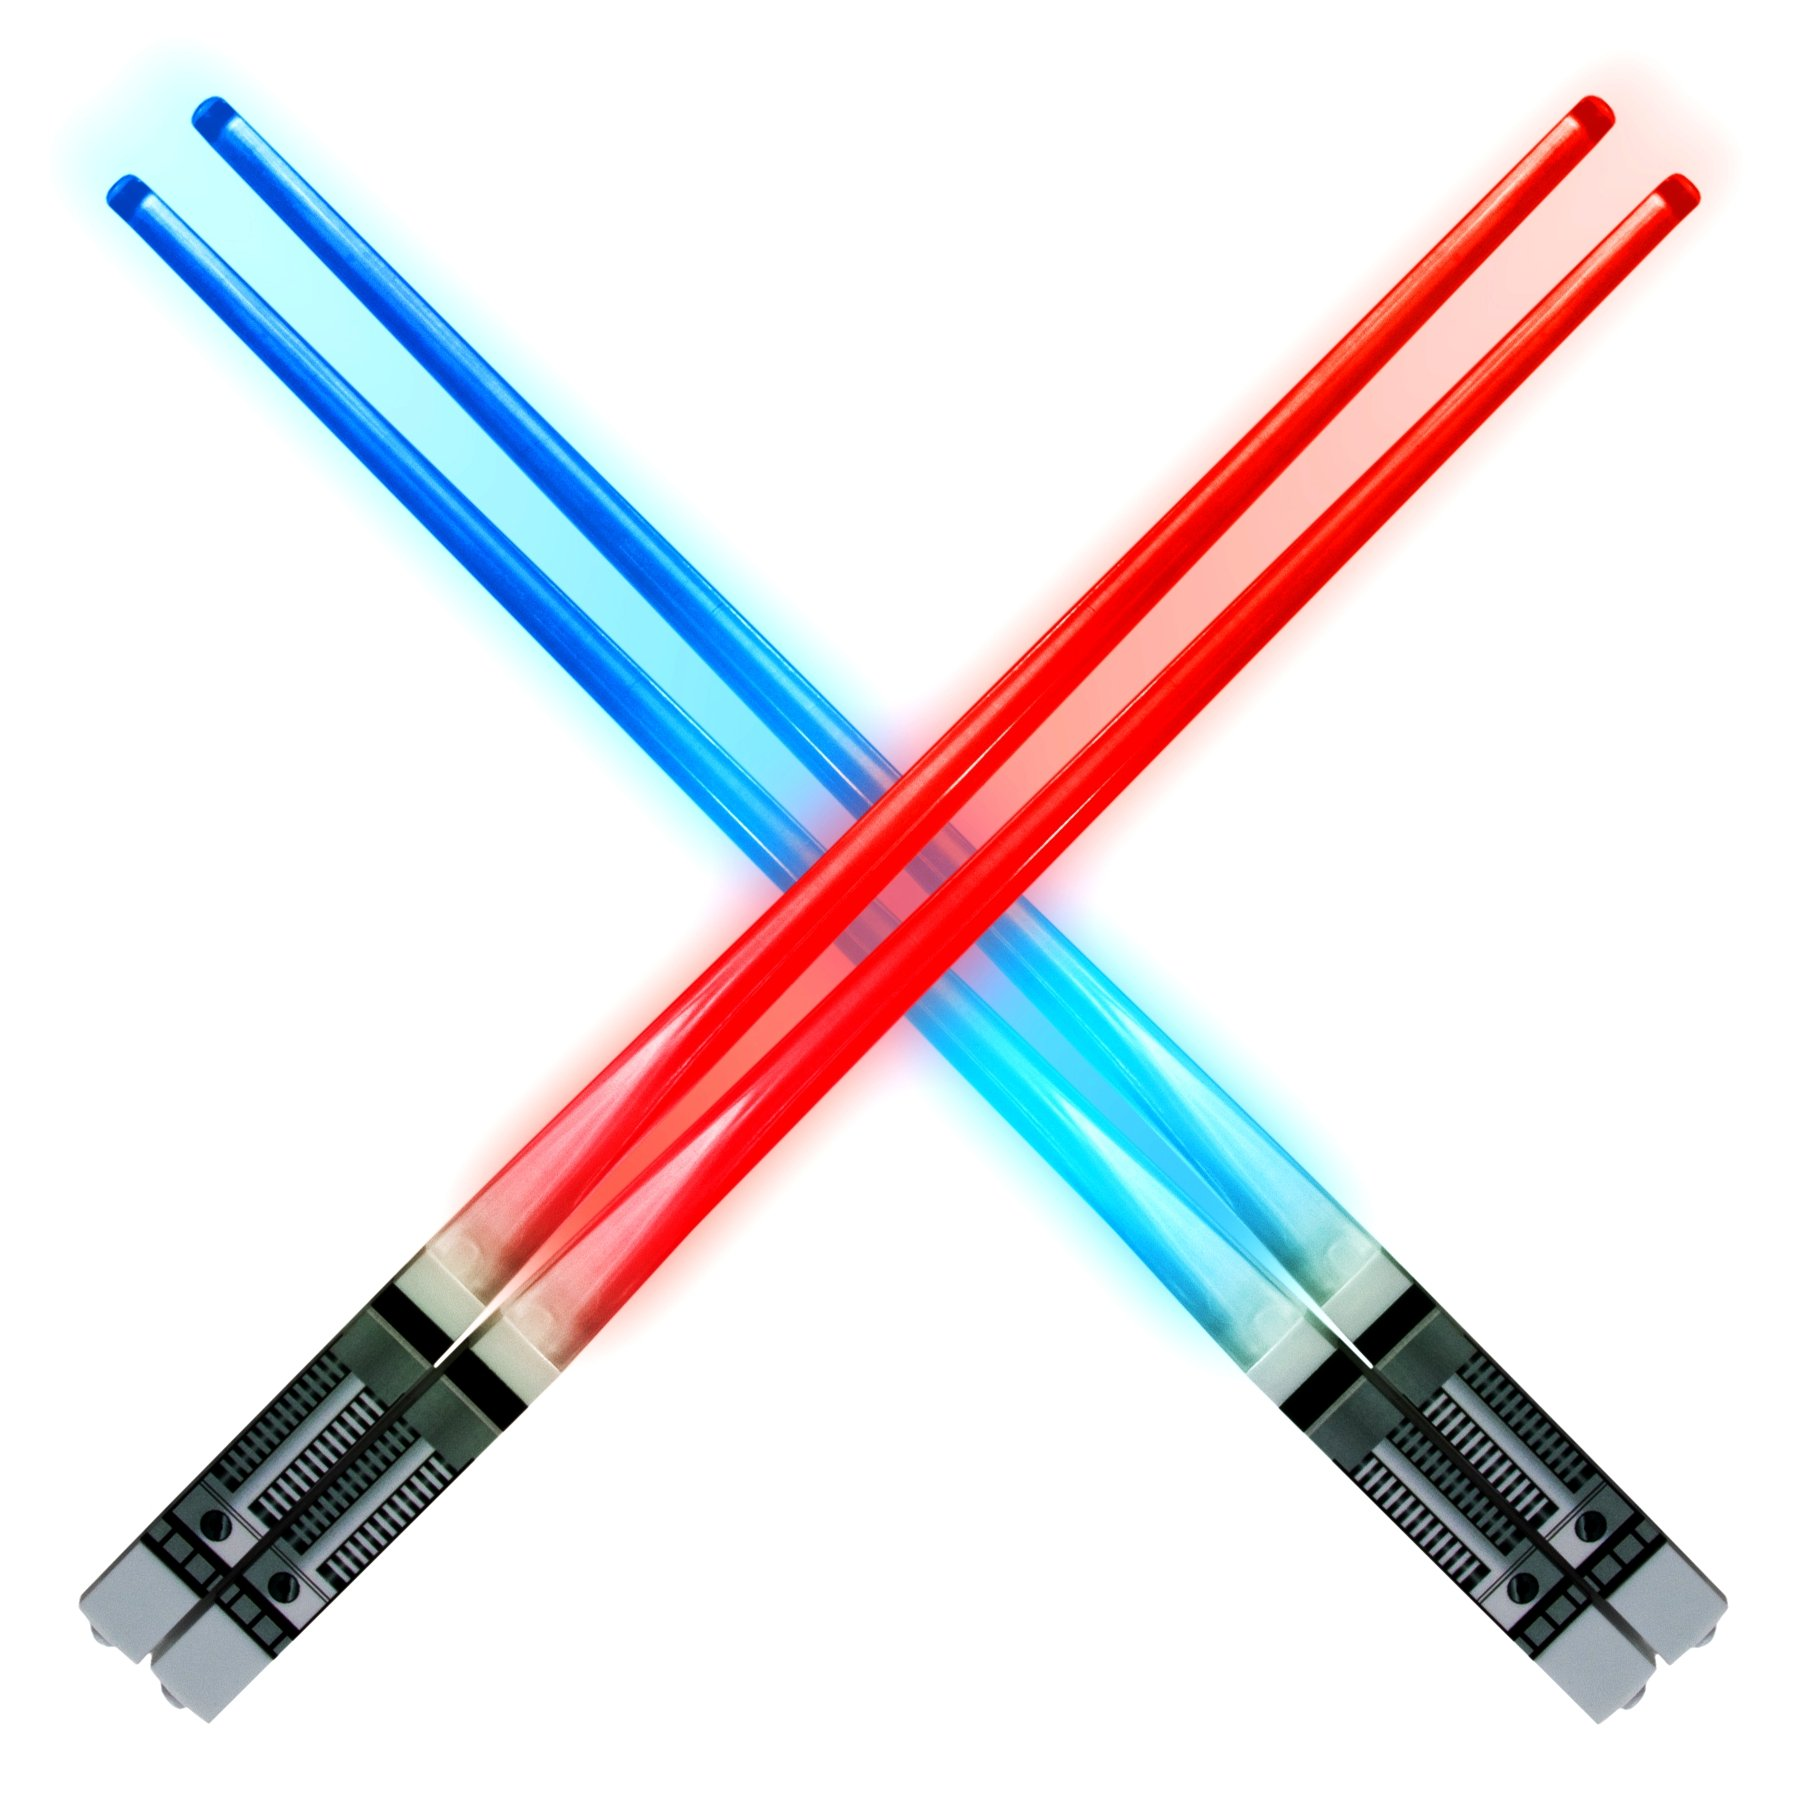 Lightsaber Light up LED Chopsticks Multi function for Star Wars Theme Party Fun for Gift Set [4 PAIR – RED/BLUE / GREEN/PURPLE SET] by Luxxis (Image #4)